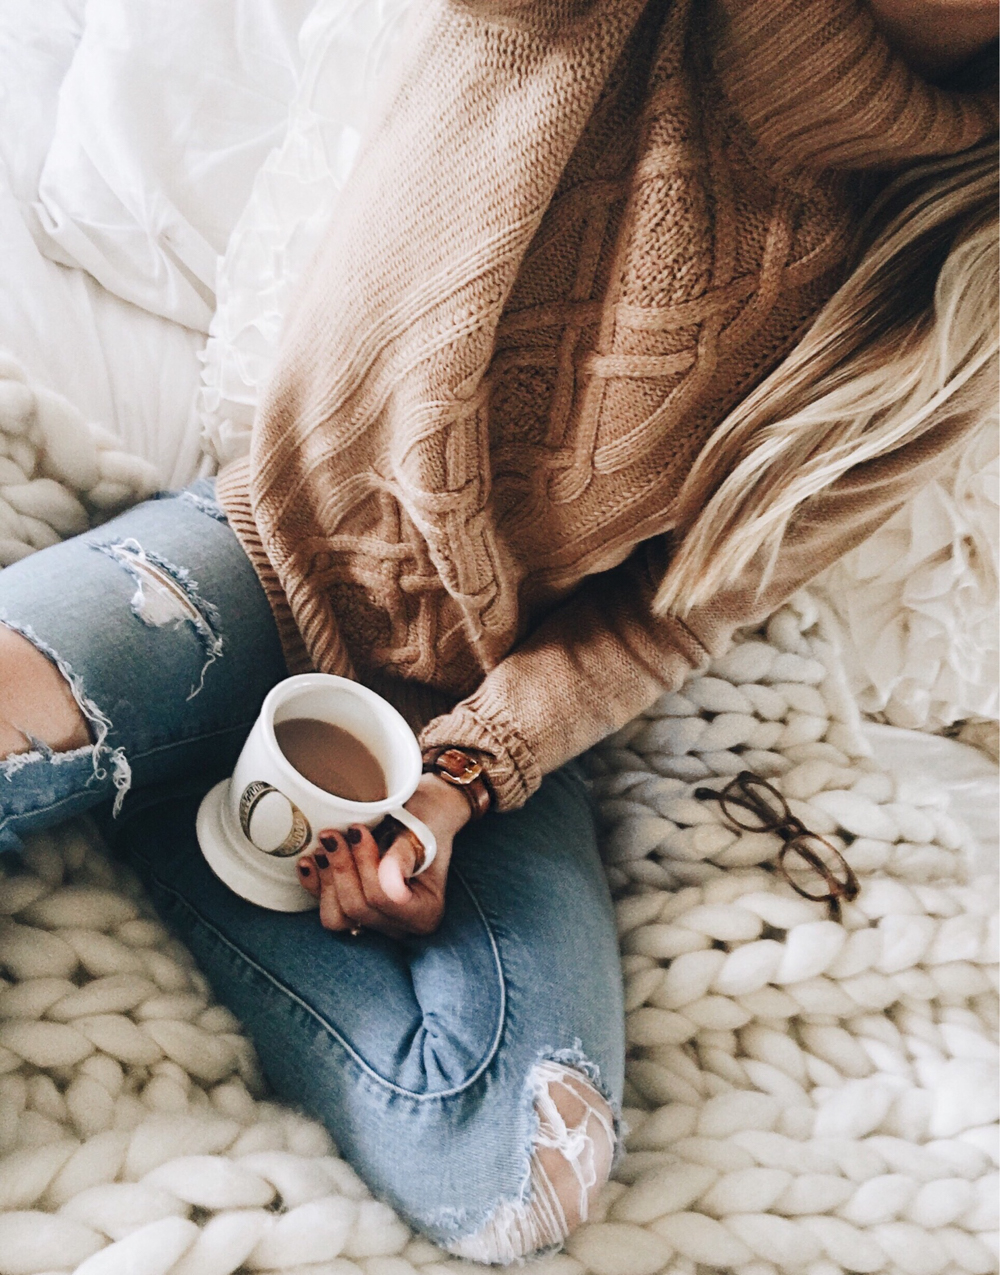 livvyland-blog-olivia-watson-instagram-roundup-jcrew-camel-cable-knit-sweater-cozy-coffee-in-bed